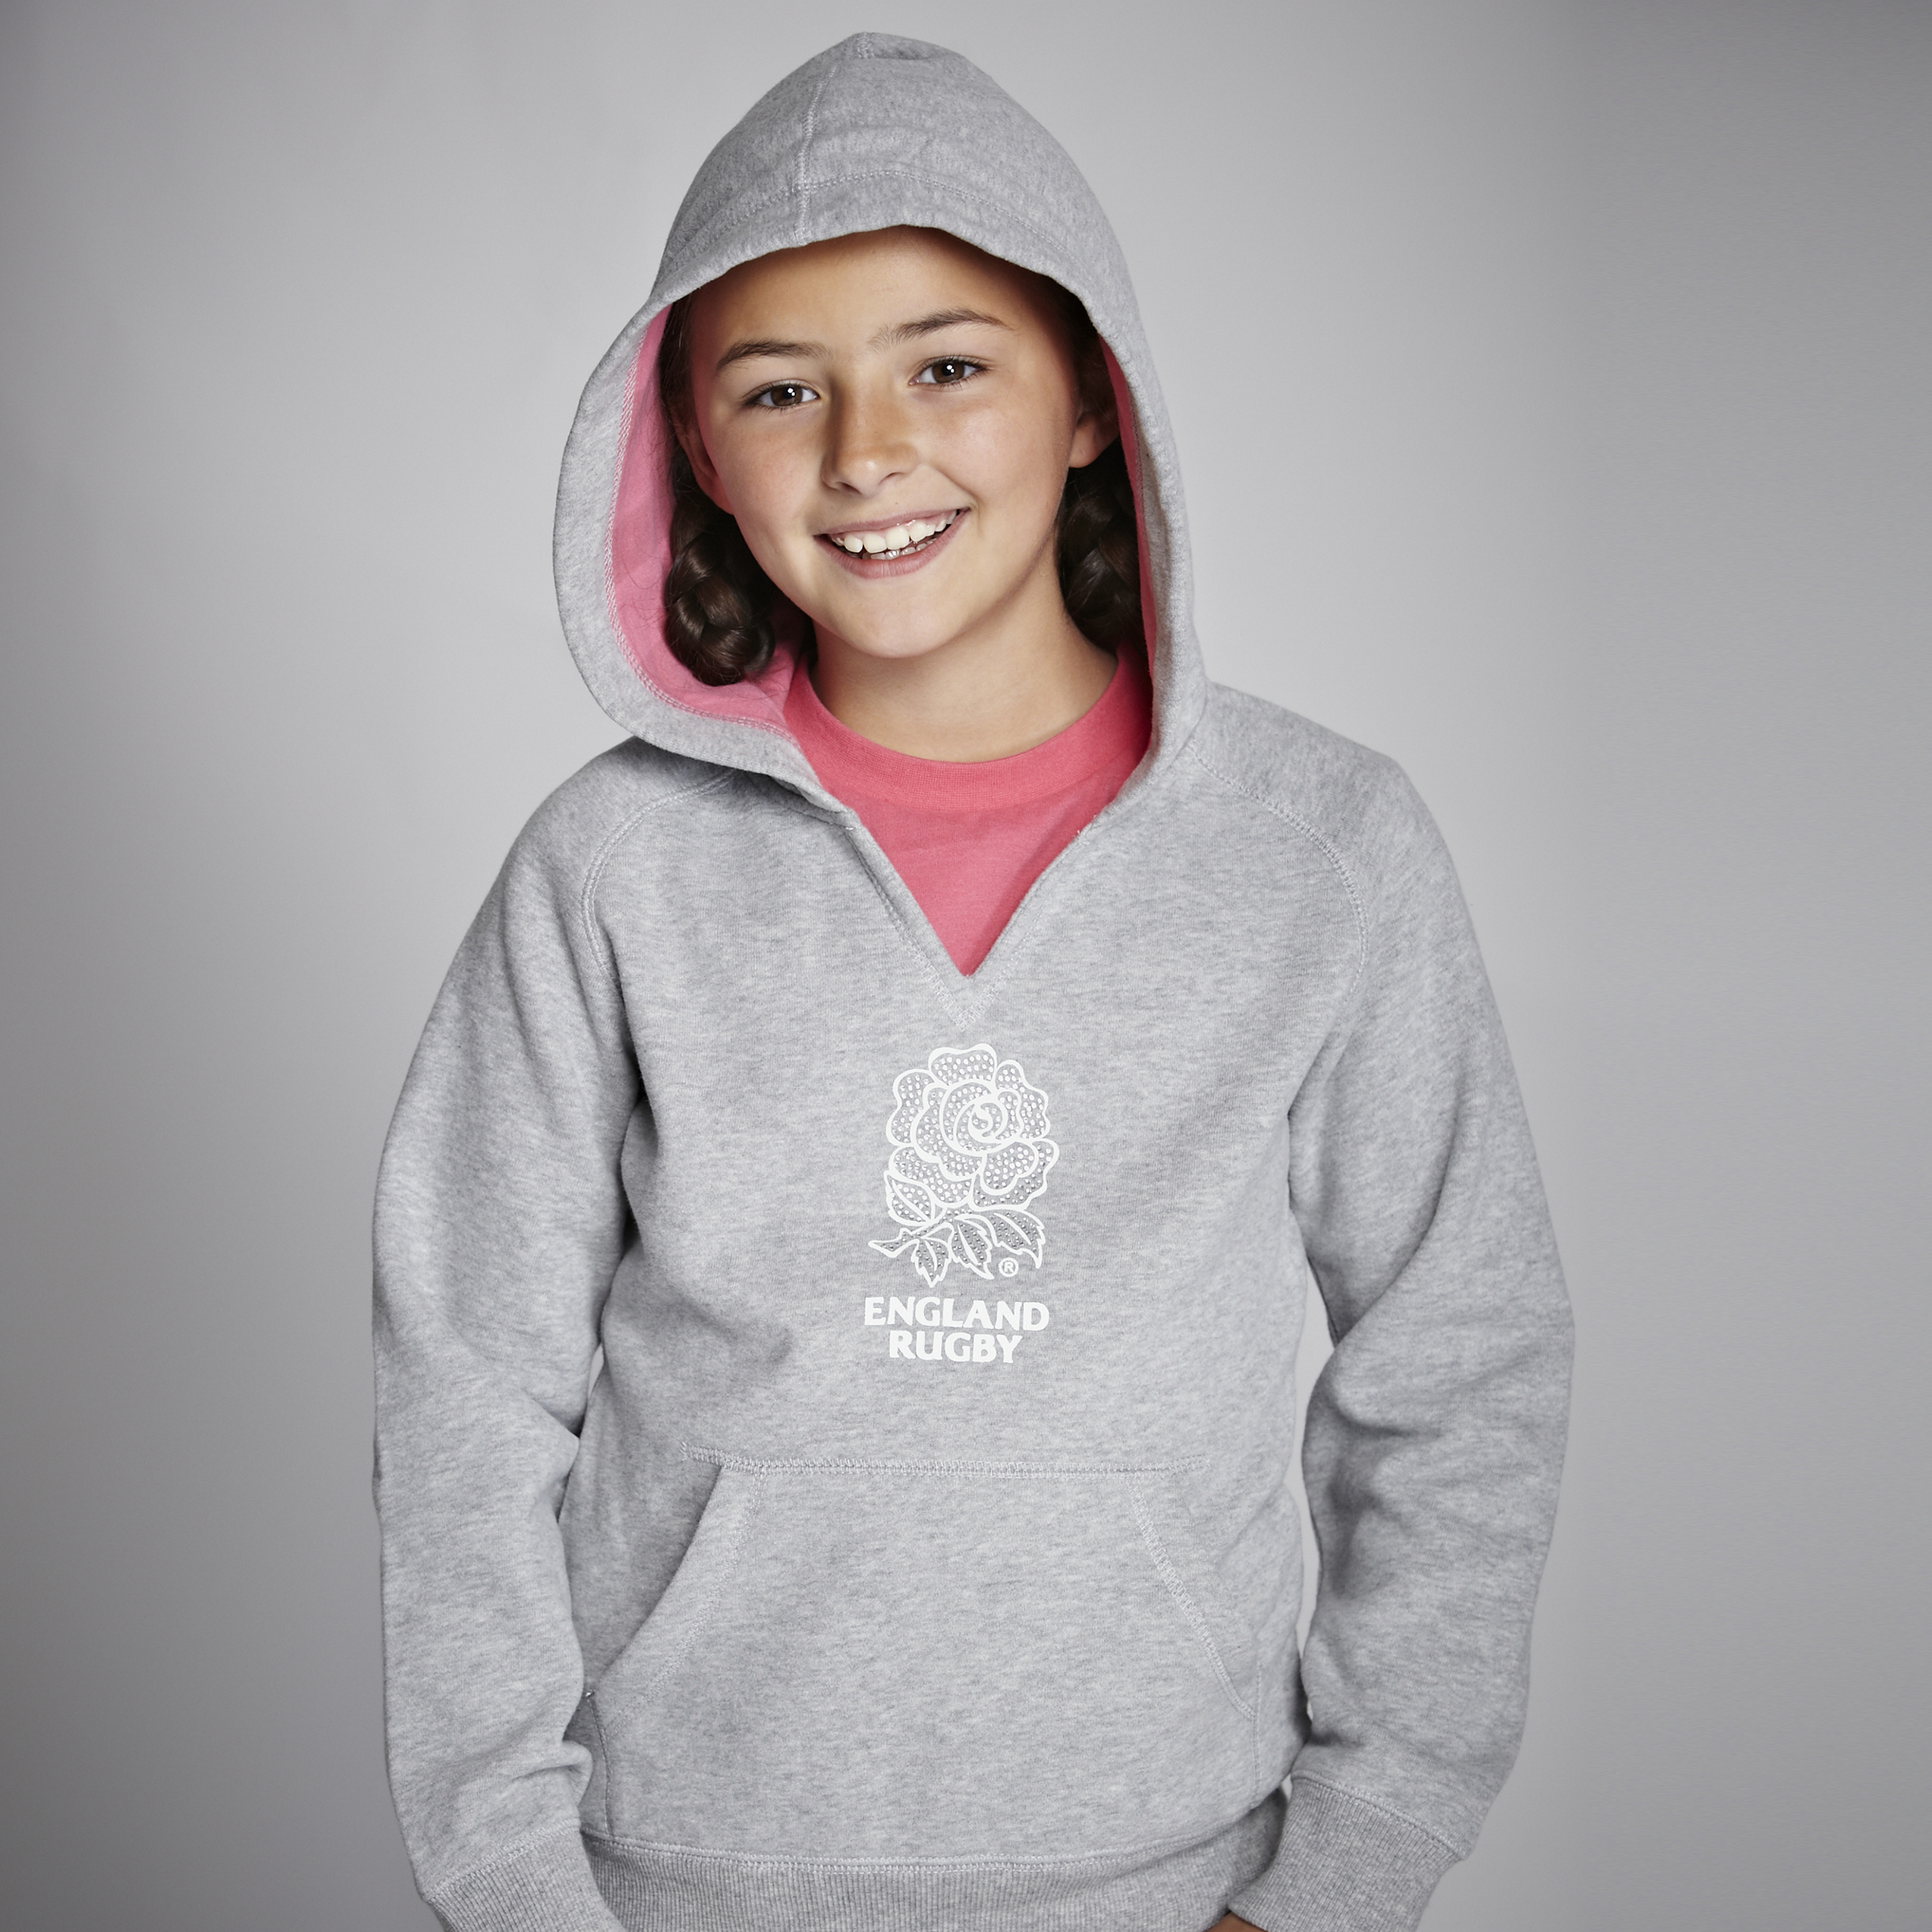 England Rugby Classic Collection Hoody - Grey/Pink - Older Girls